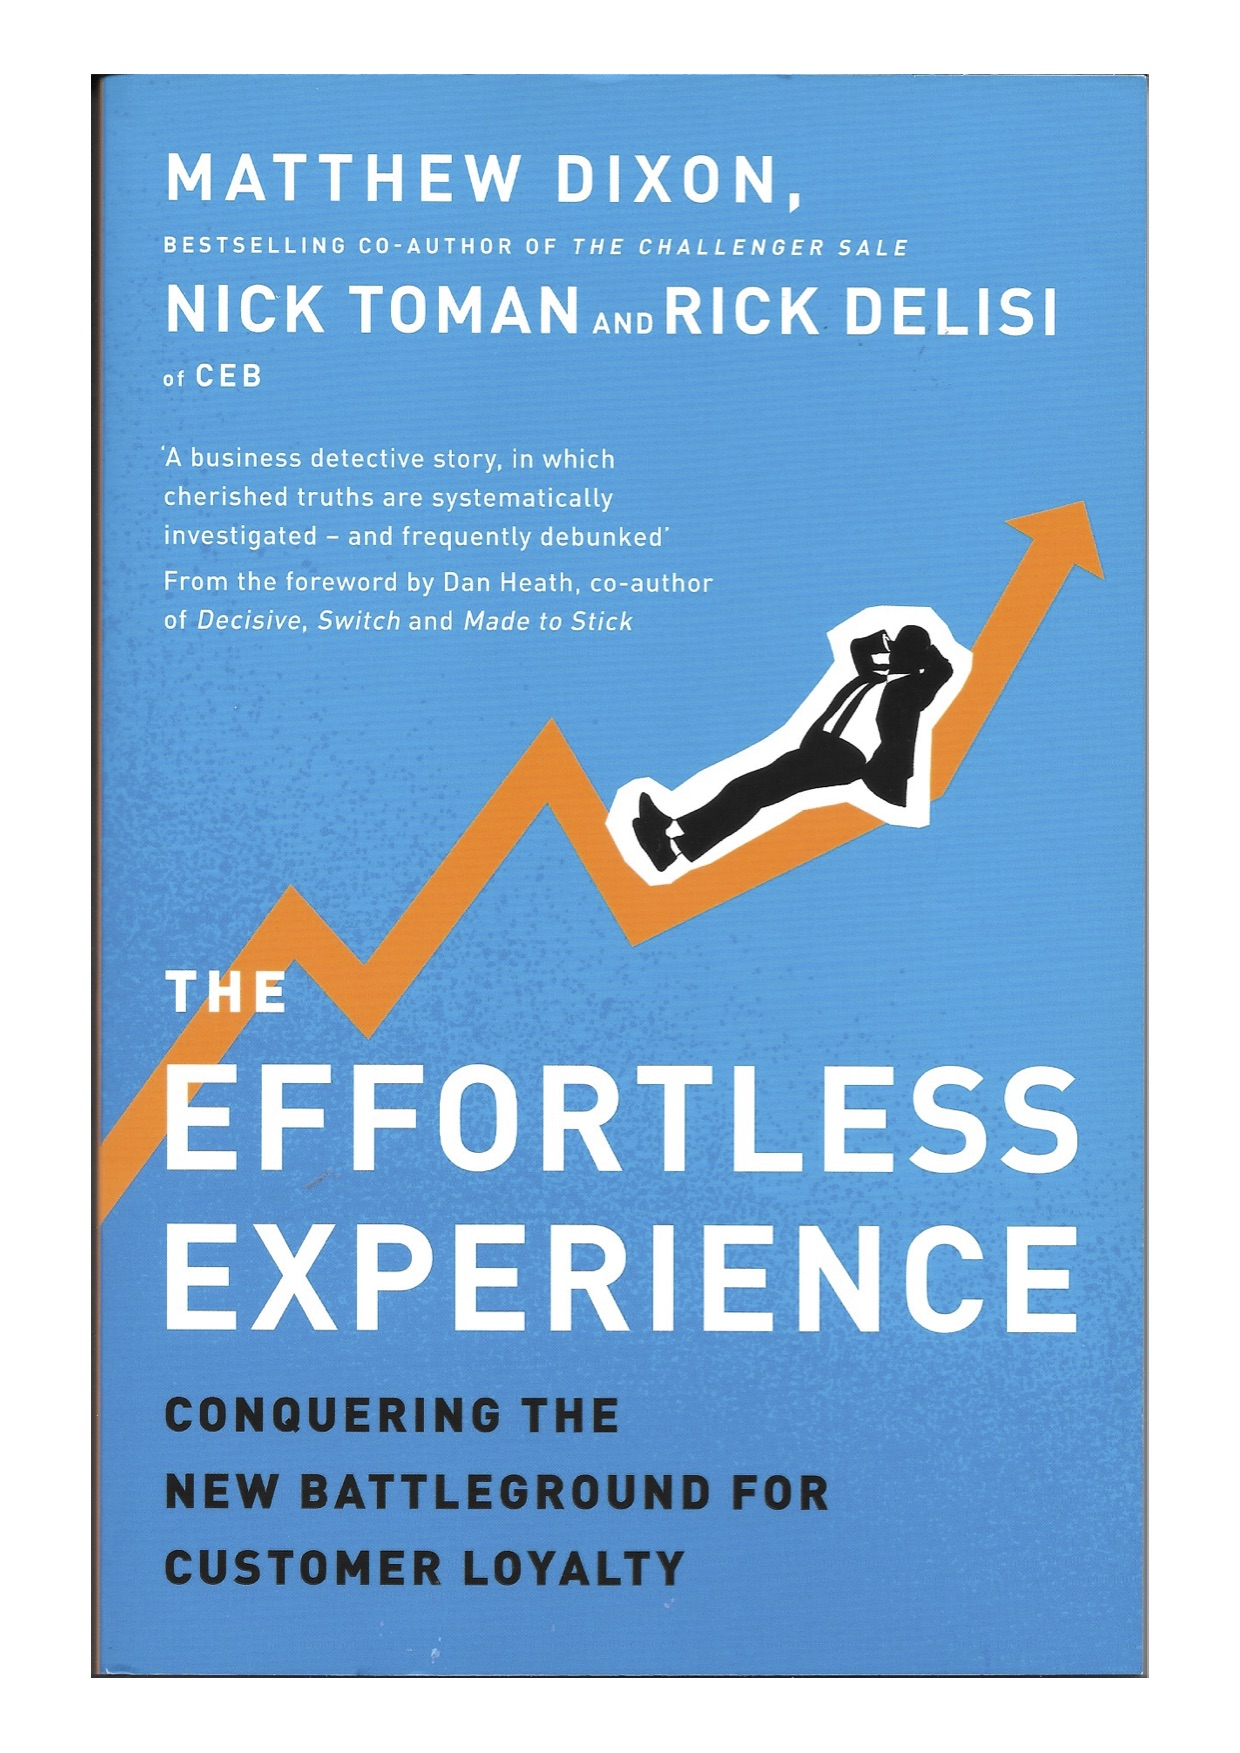 The Effortless Experience – Dixon, Toman & Delisi – Greatest Hits Blog – the best business books summerised